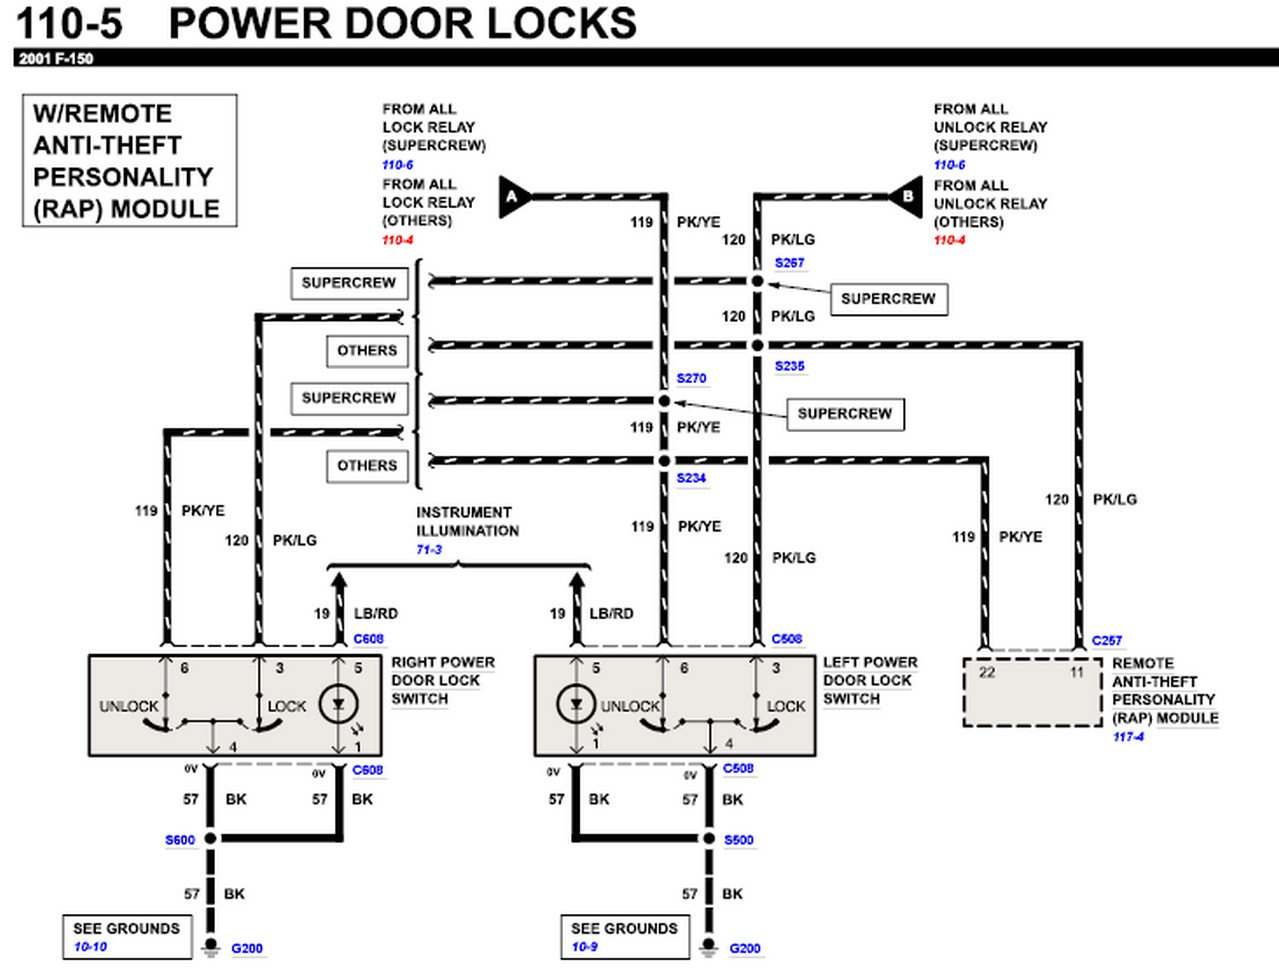 2010 F150 Wiring Diagram : Ford explorer window wiring diagram free